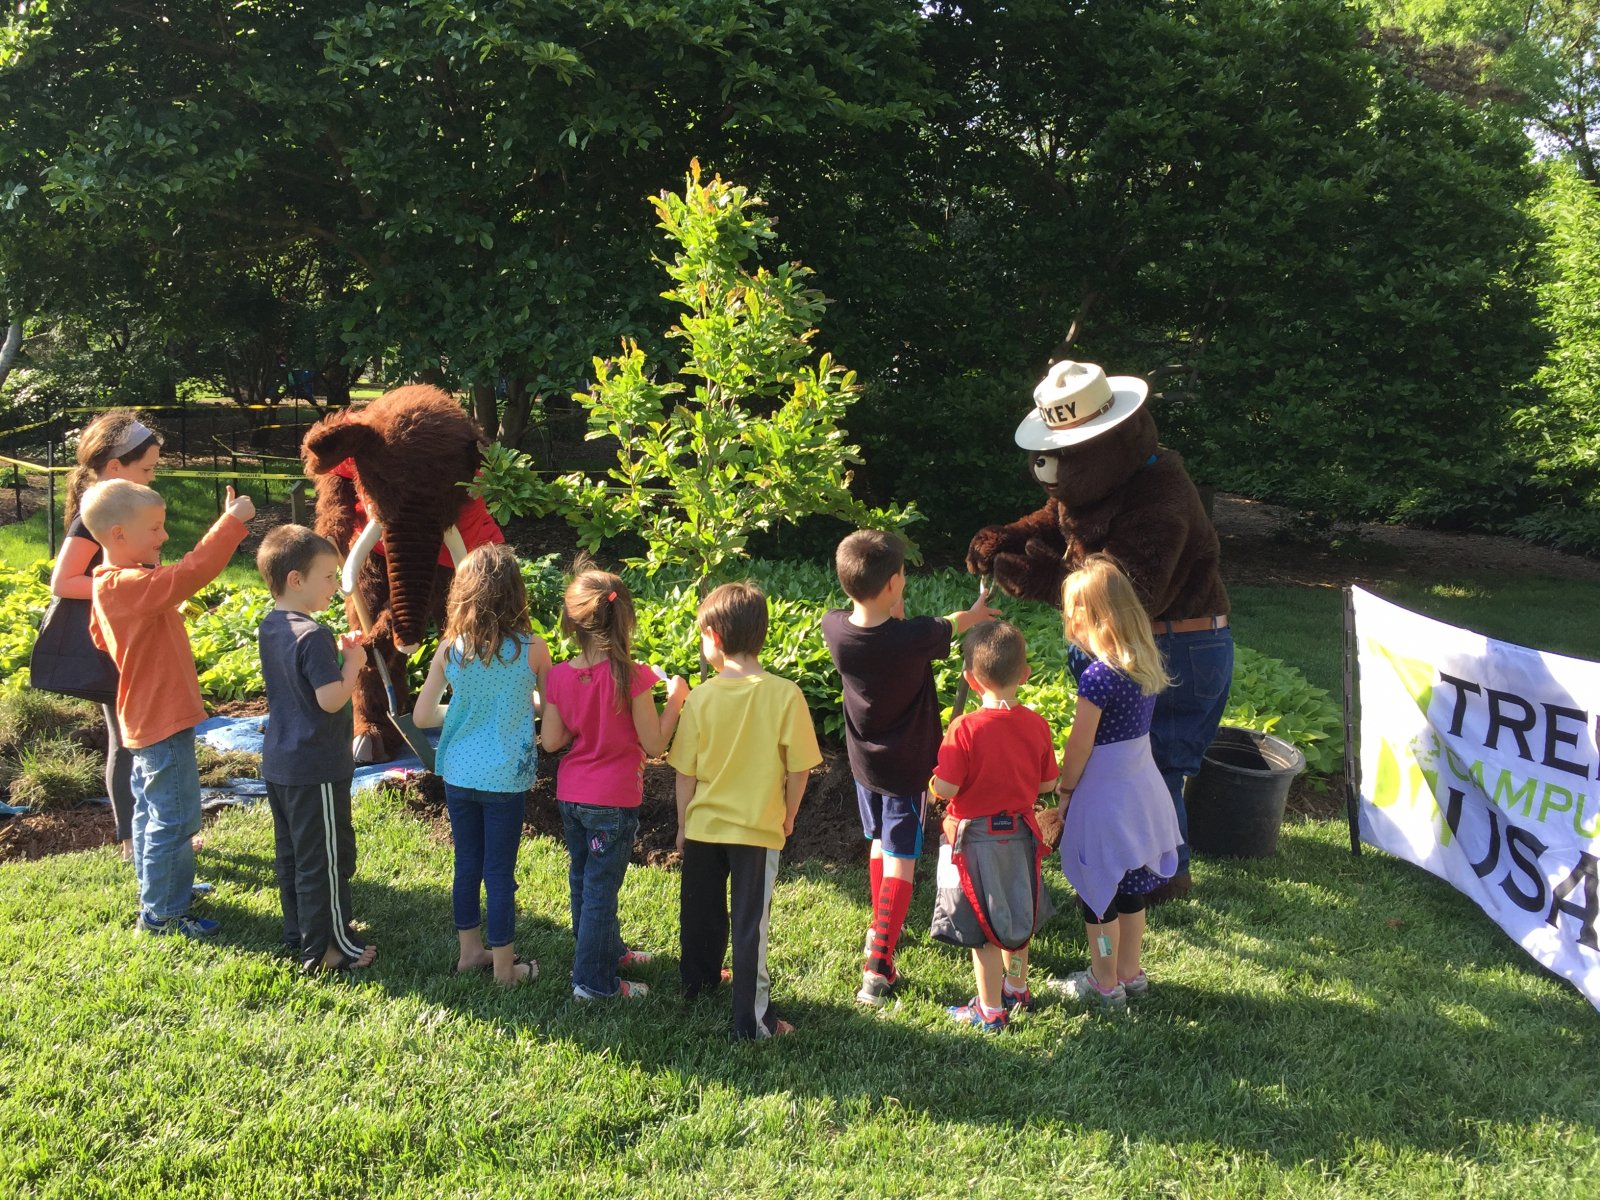 Children gather around newly planted tree and Smokey bear.